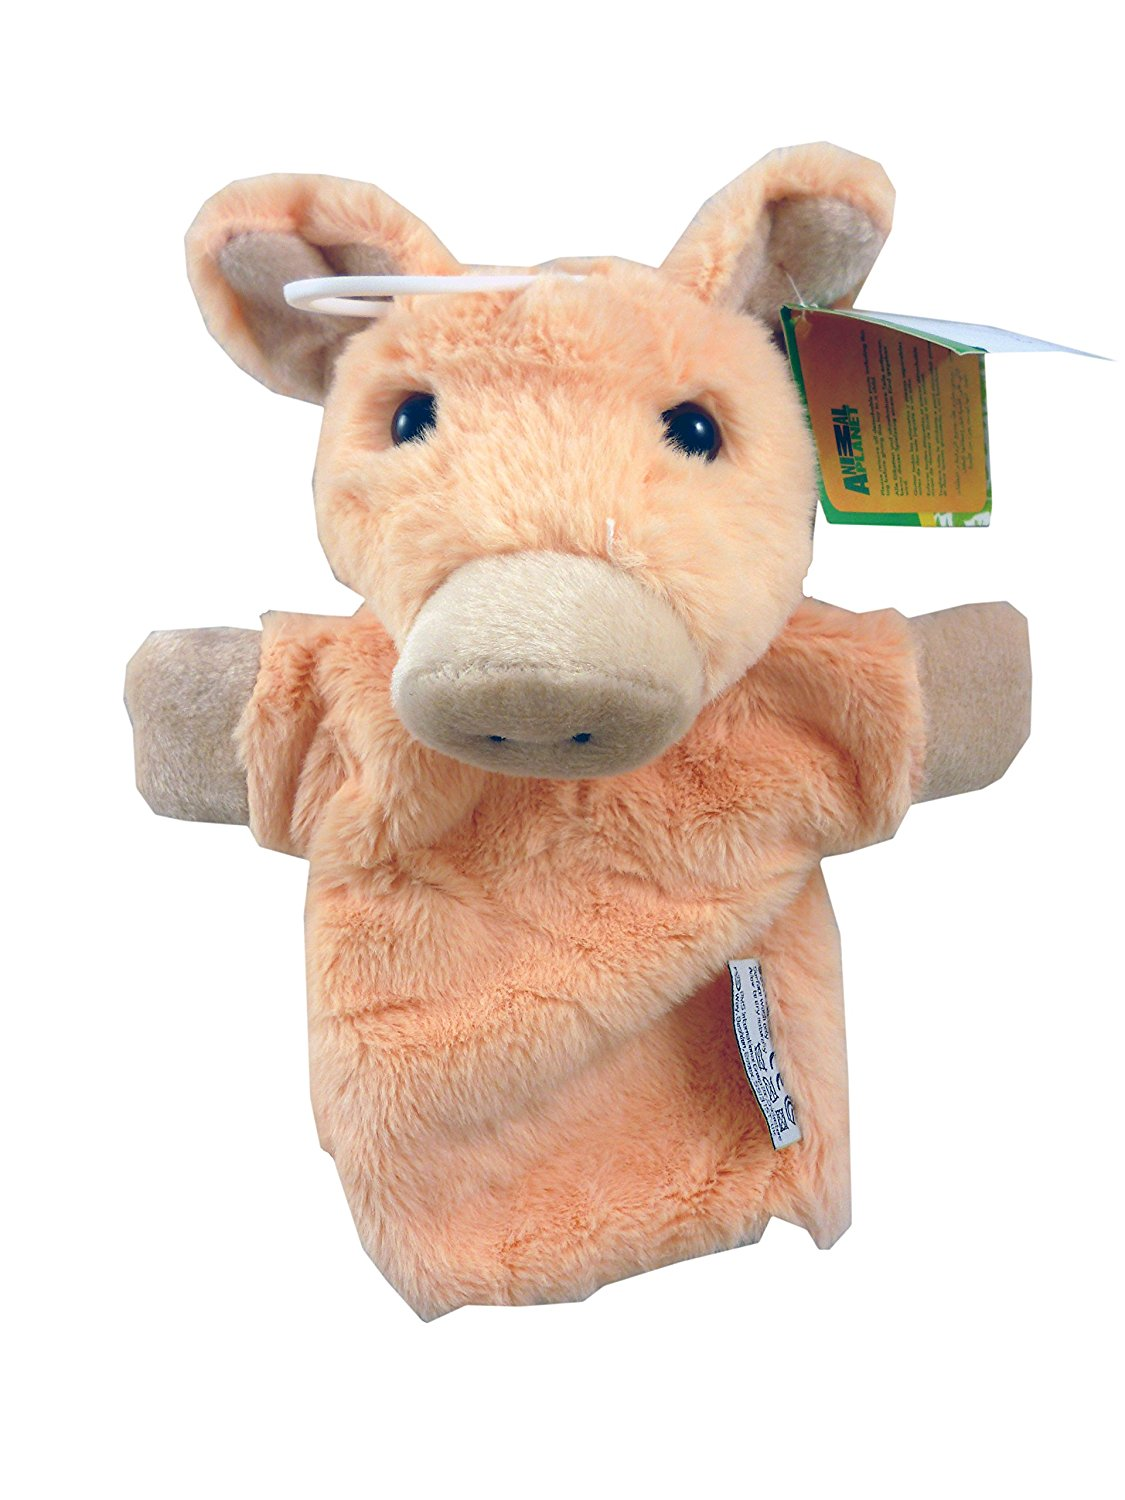 Cheap Animal Planet Toys Find Animal Planet Toys Deals On Line At